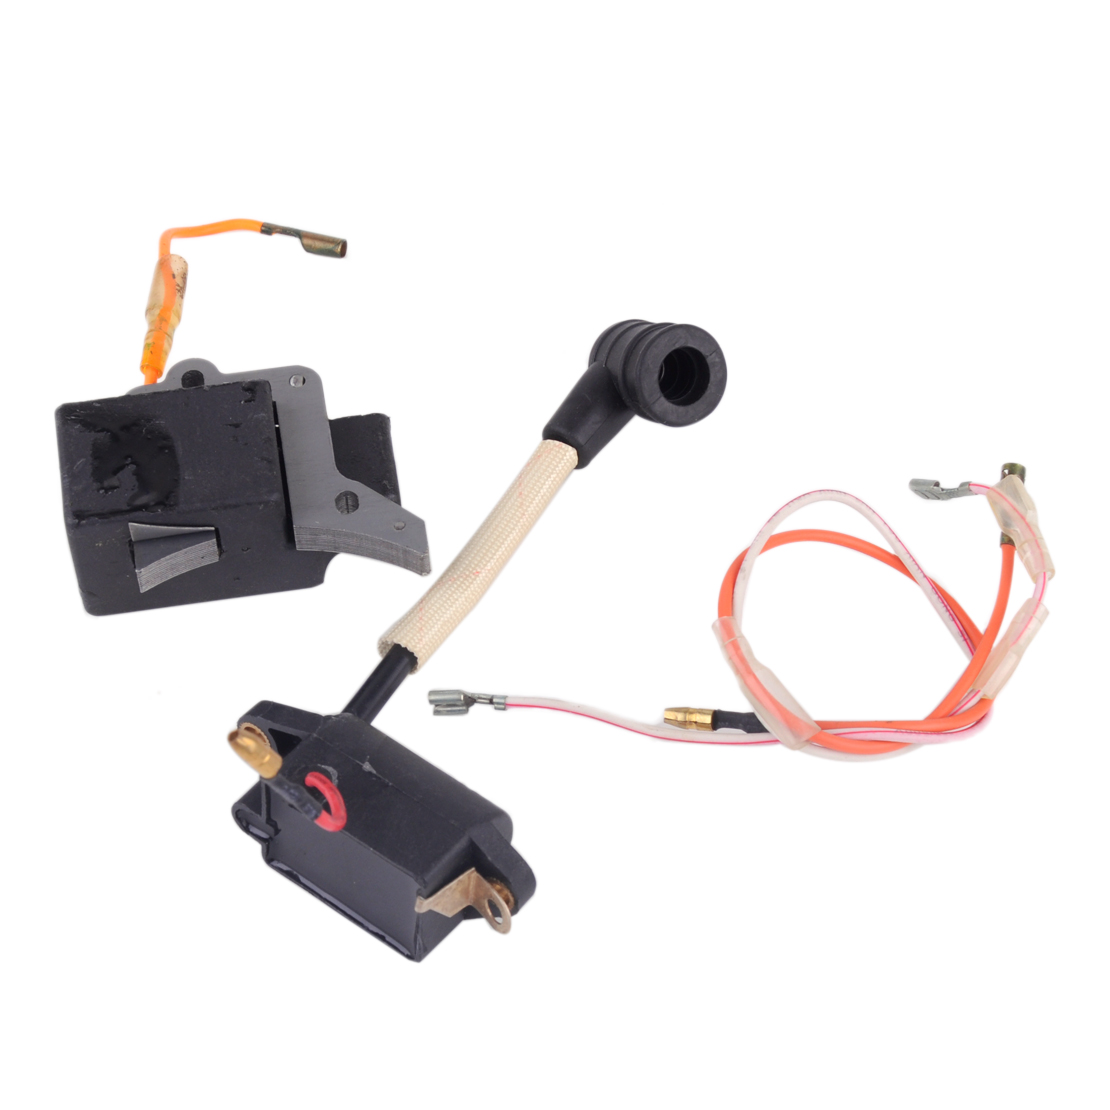 LETAOSK Chainsaw Ignition Coil Module Fit for Shindaiwa 488 # A411000460 Replacement цены